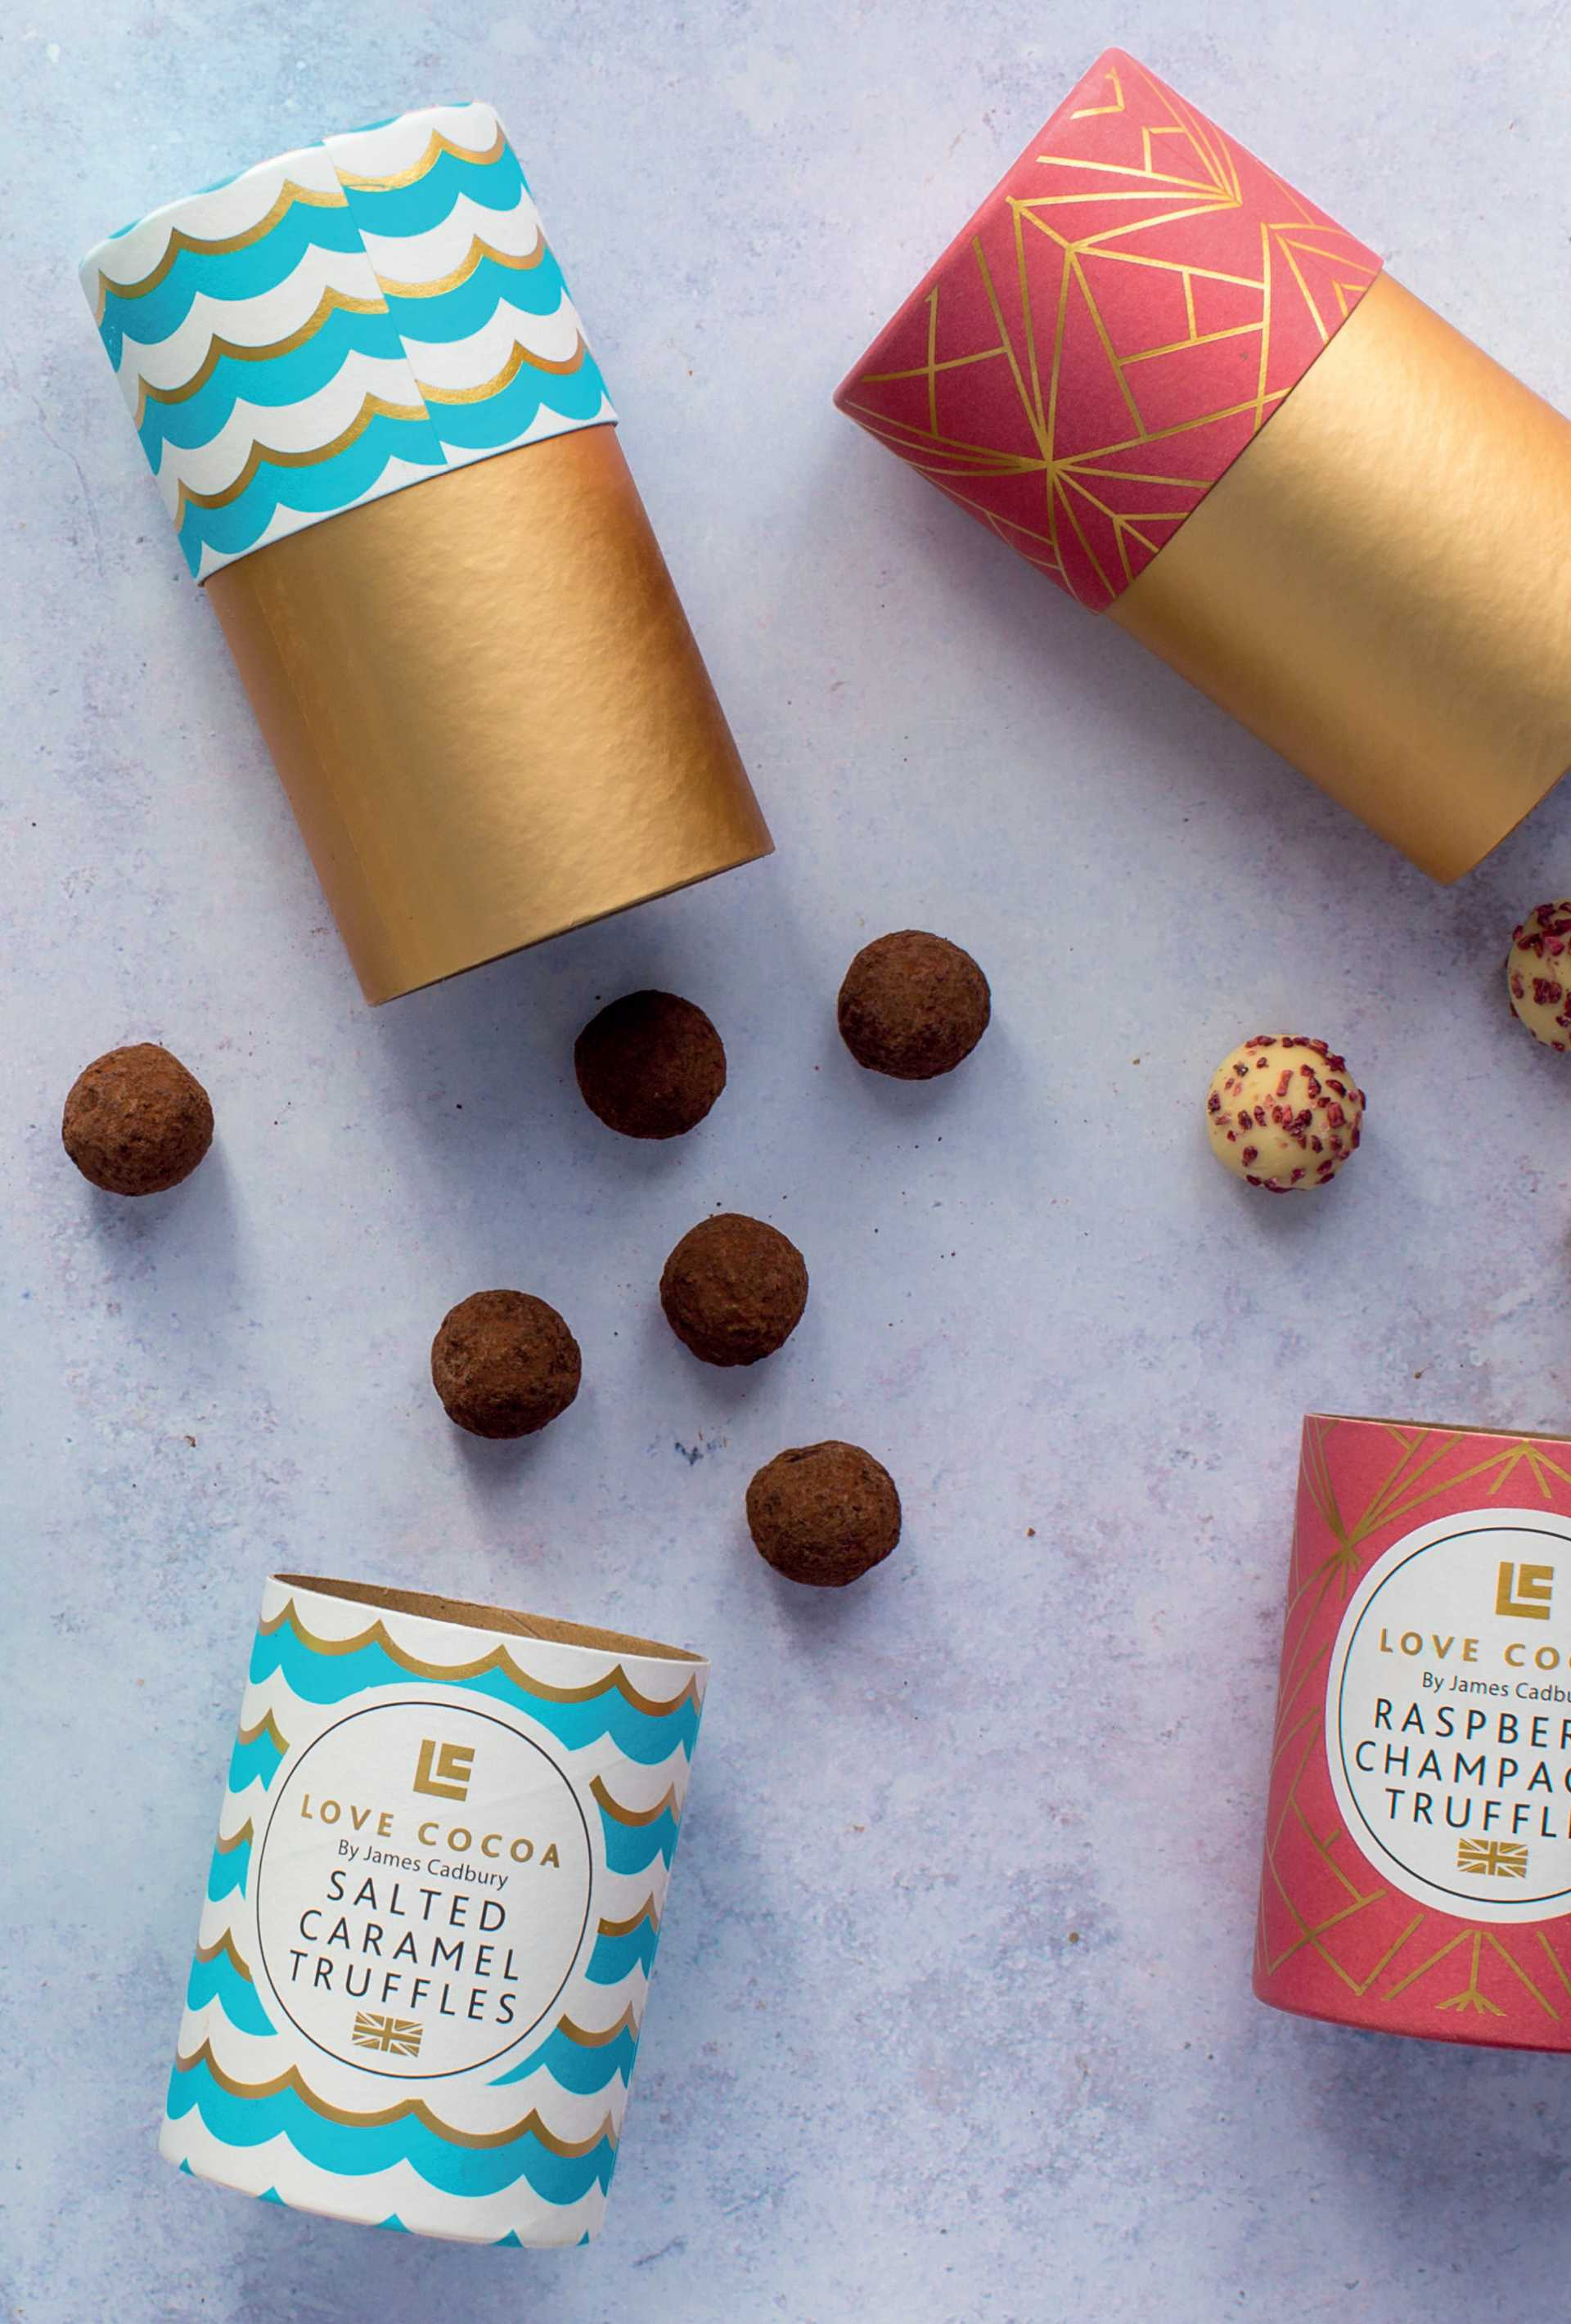 Love Cocoa - James Cadbury – using data to sell upmarket chocolate with personalisation and customisation